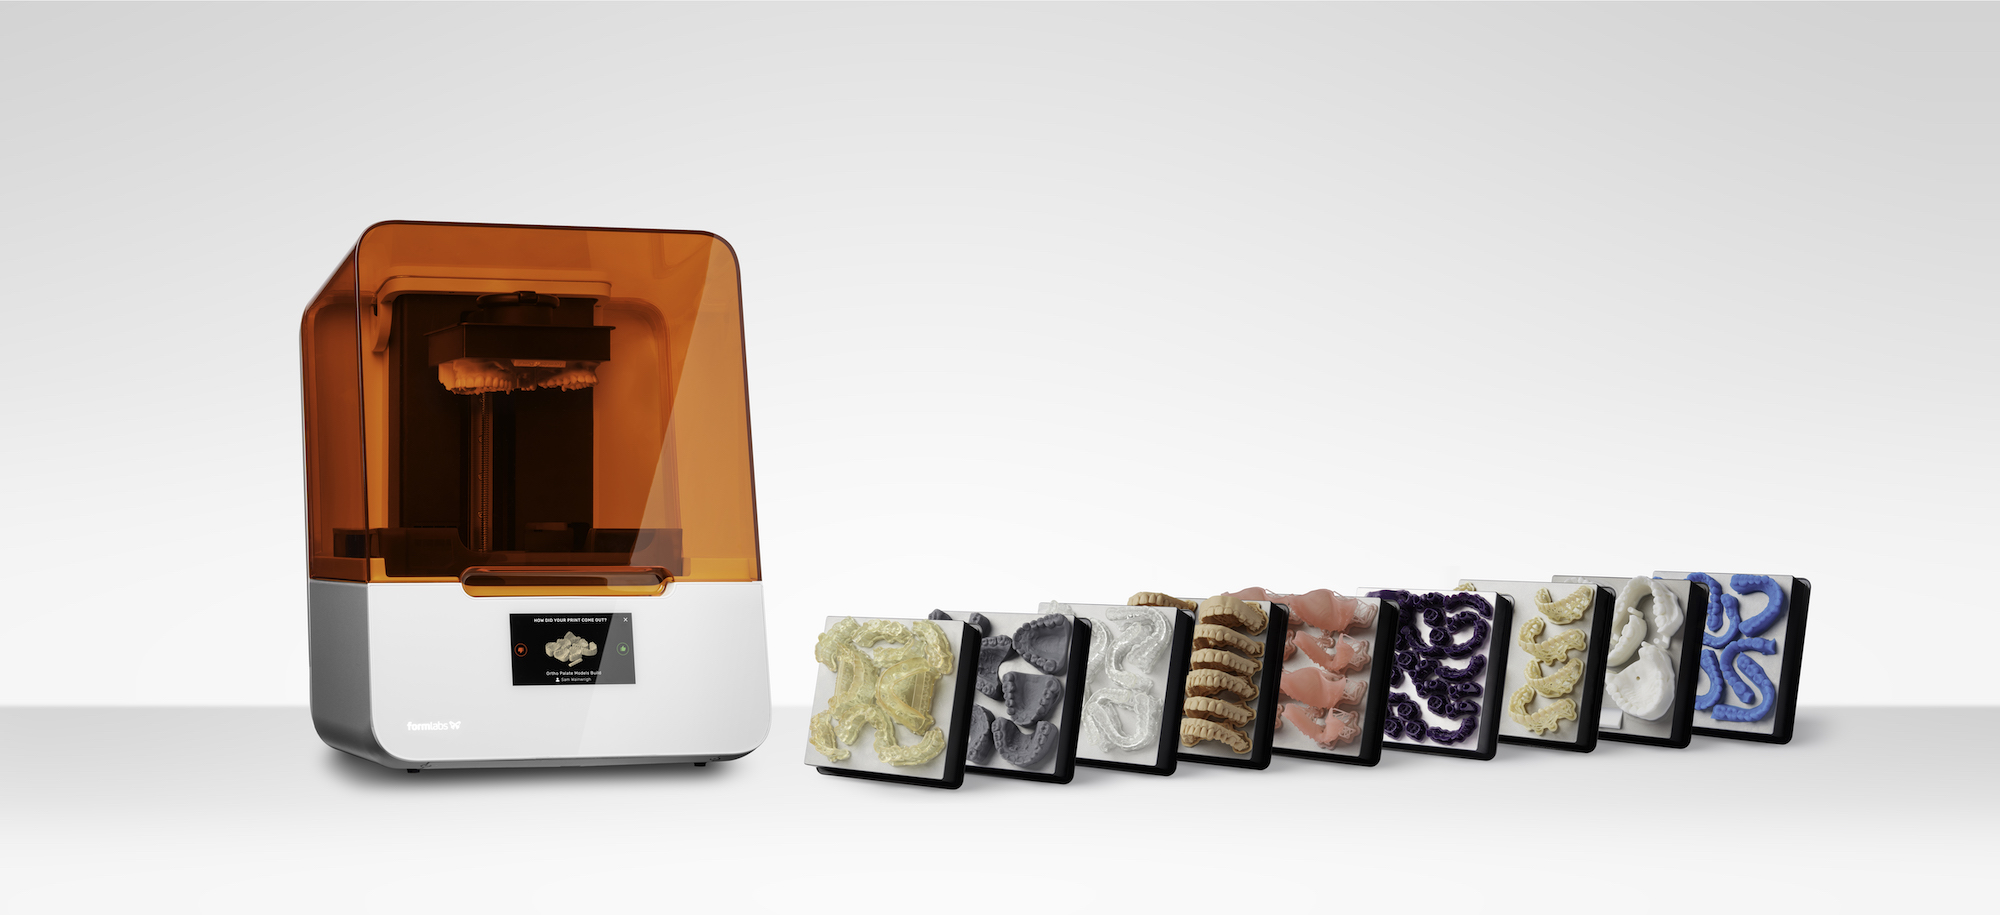 Formlabs Dental Materials Masterclass: From Restorative Dentistry to Orthodontics, Bring High-Accuracy 3D Printing to your Organization